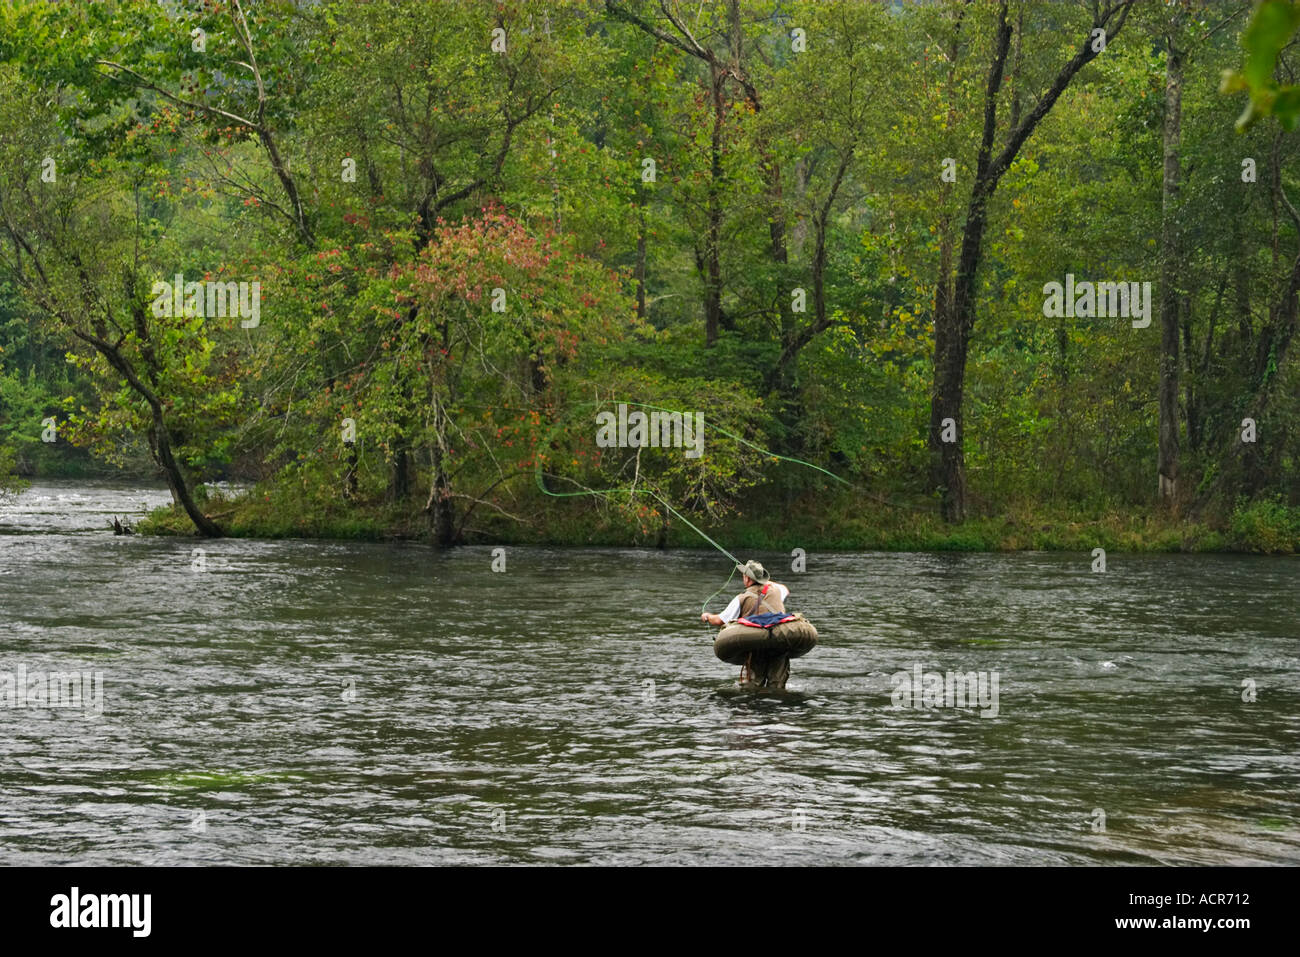 Fly Fisherman in float tube trout fishing the Hiwassee River